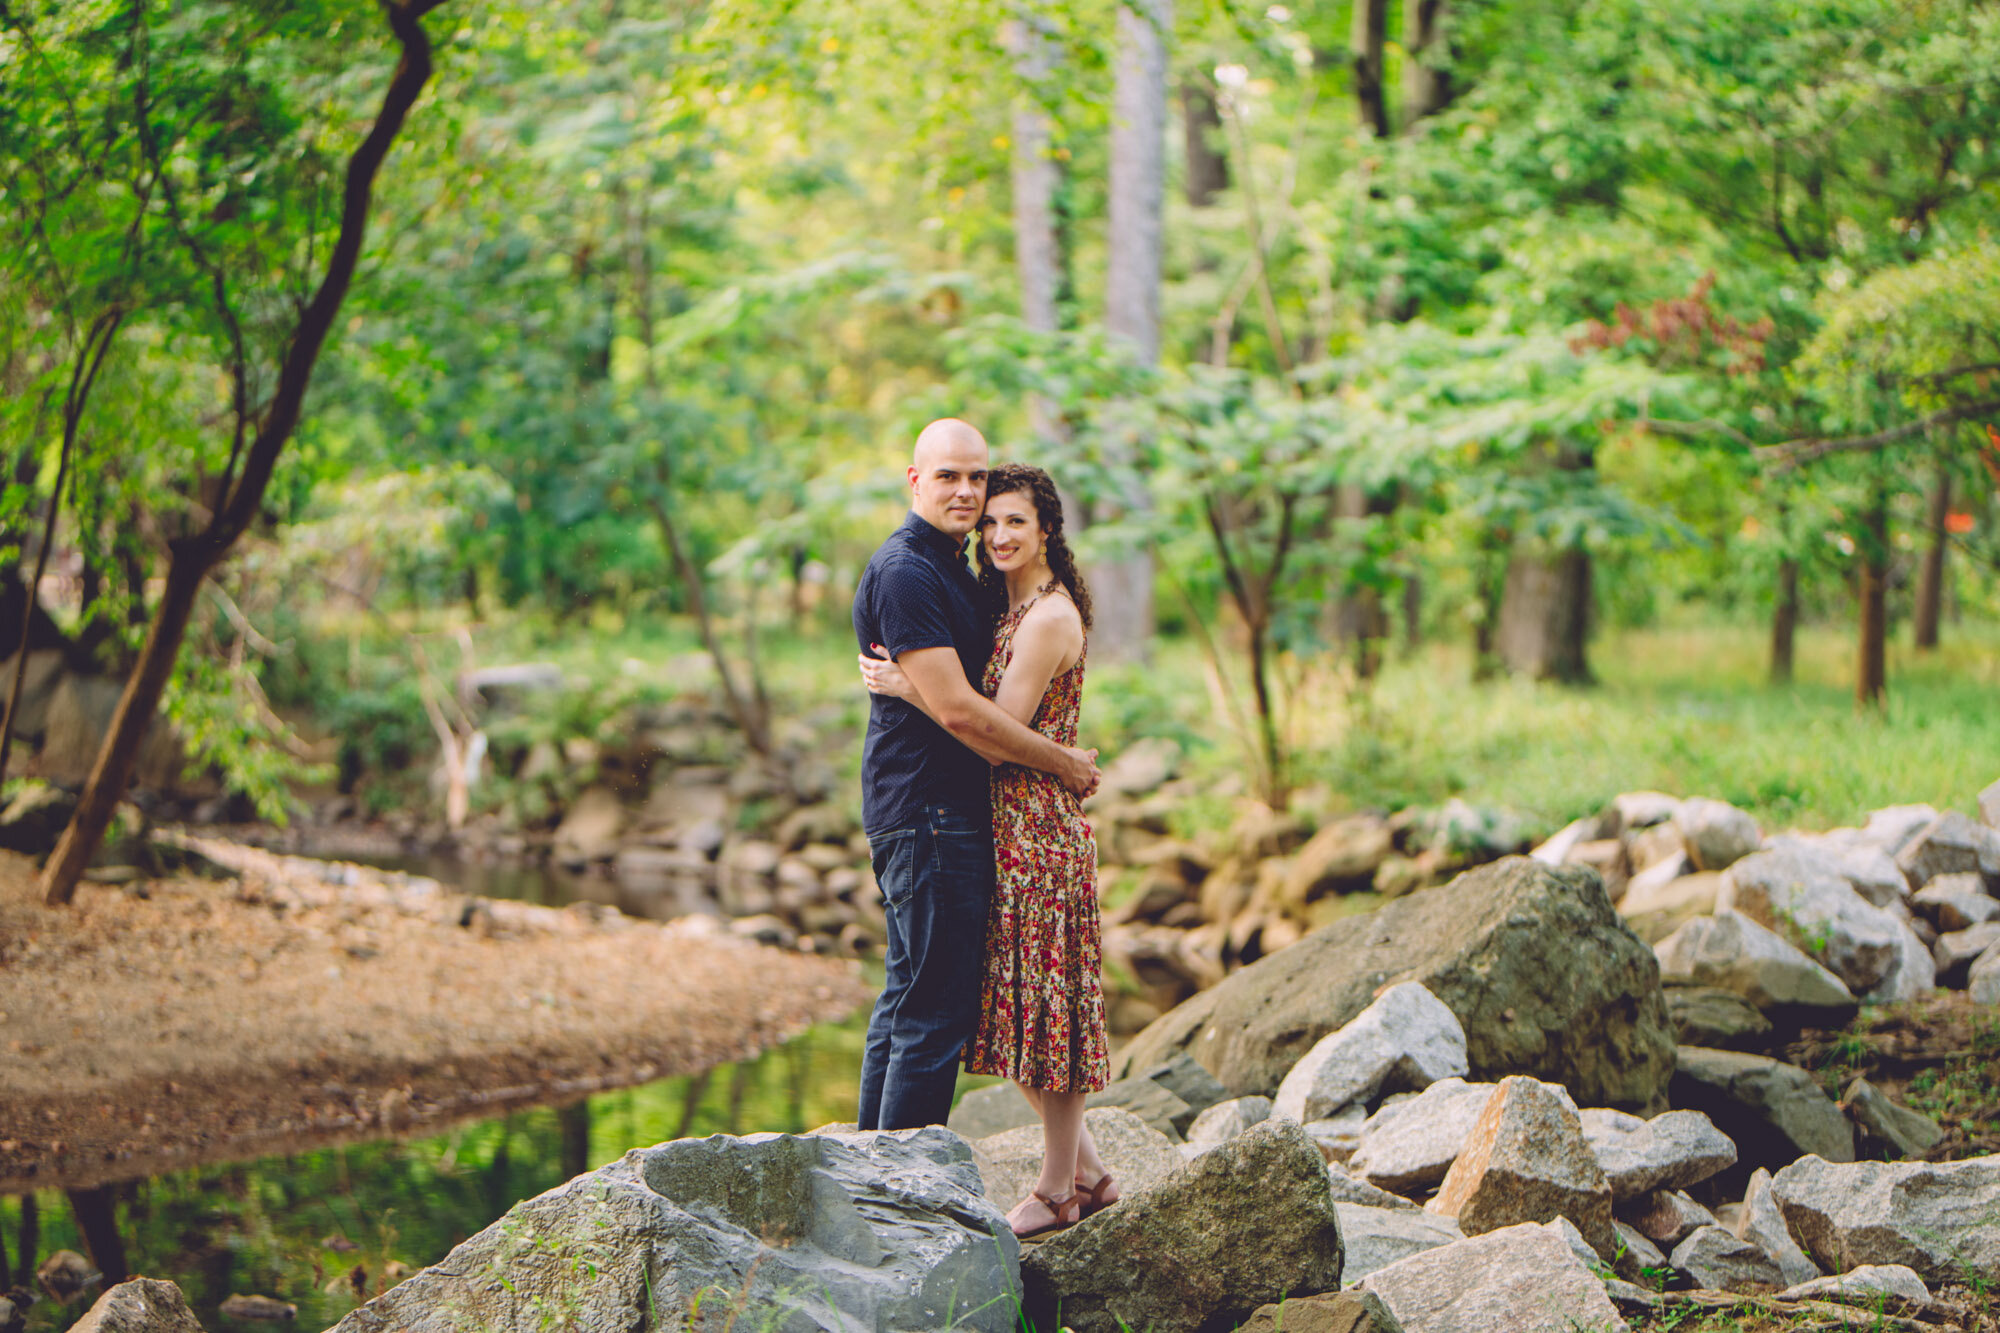 Bon Air Park Rose Garden Engagement Photos-18.jpg